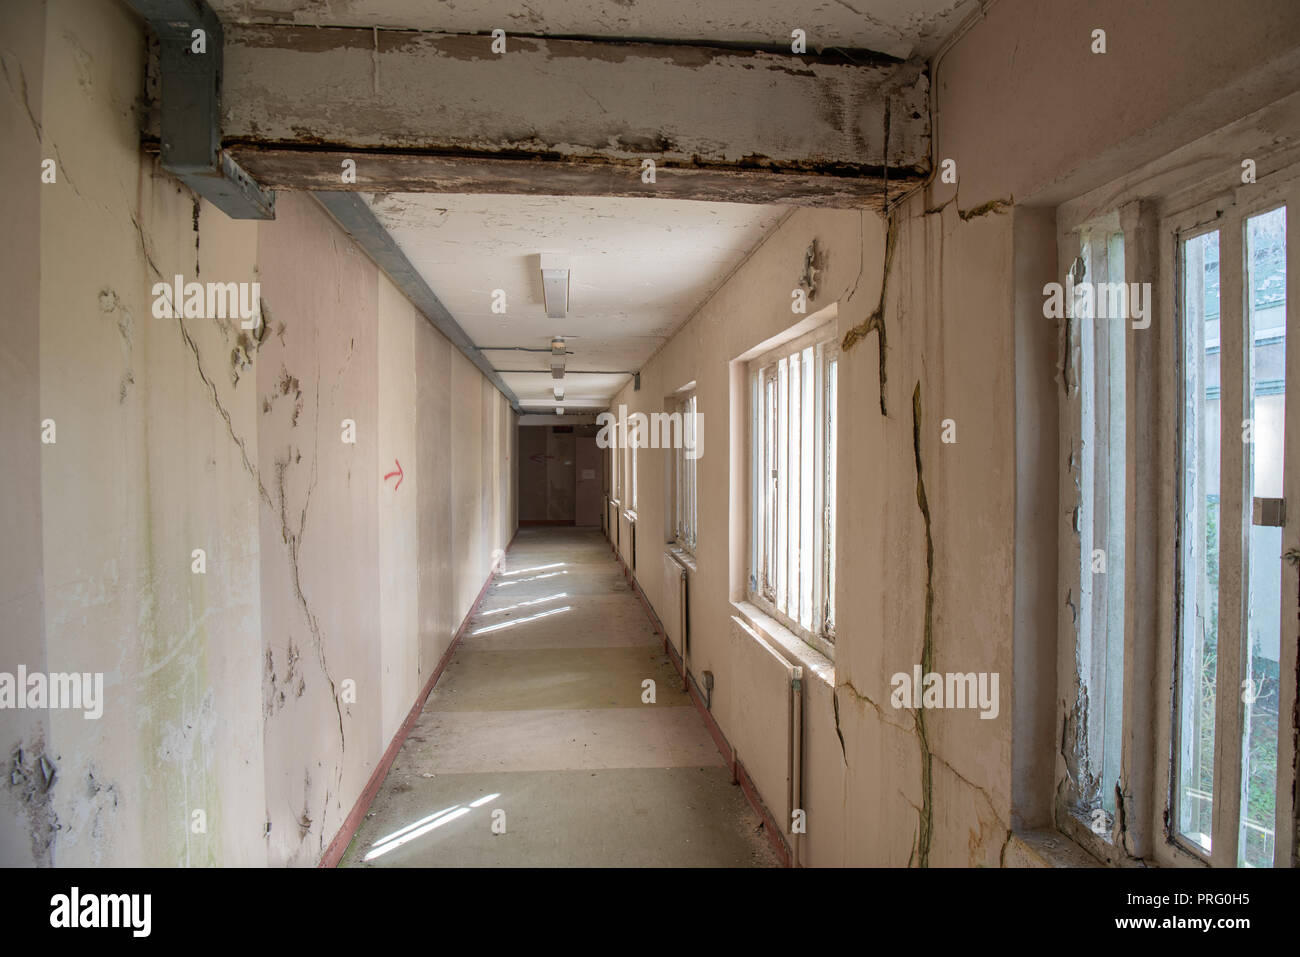 Corridor inside an abandoned prison with windows with steel bars. - Stock Image